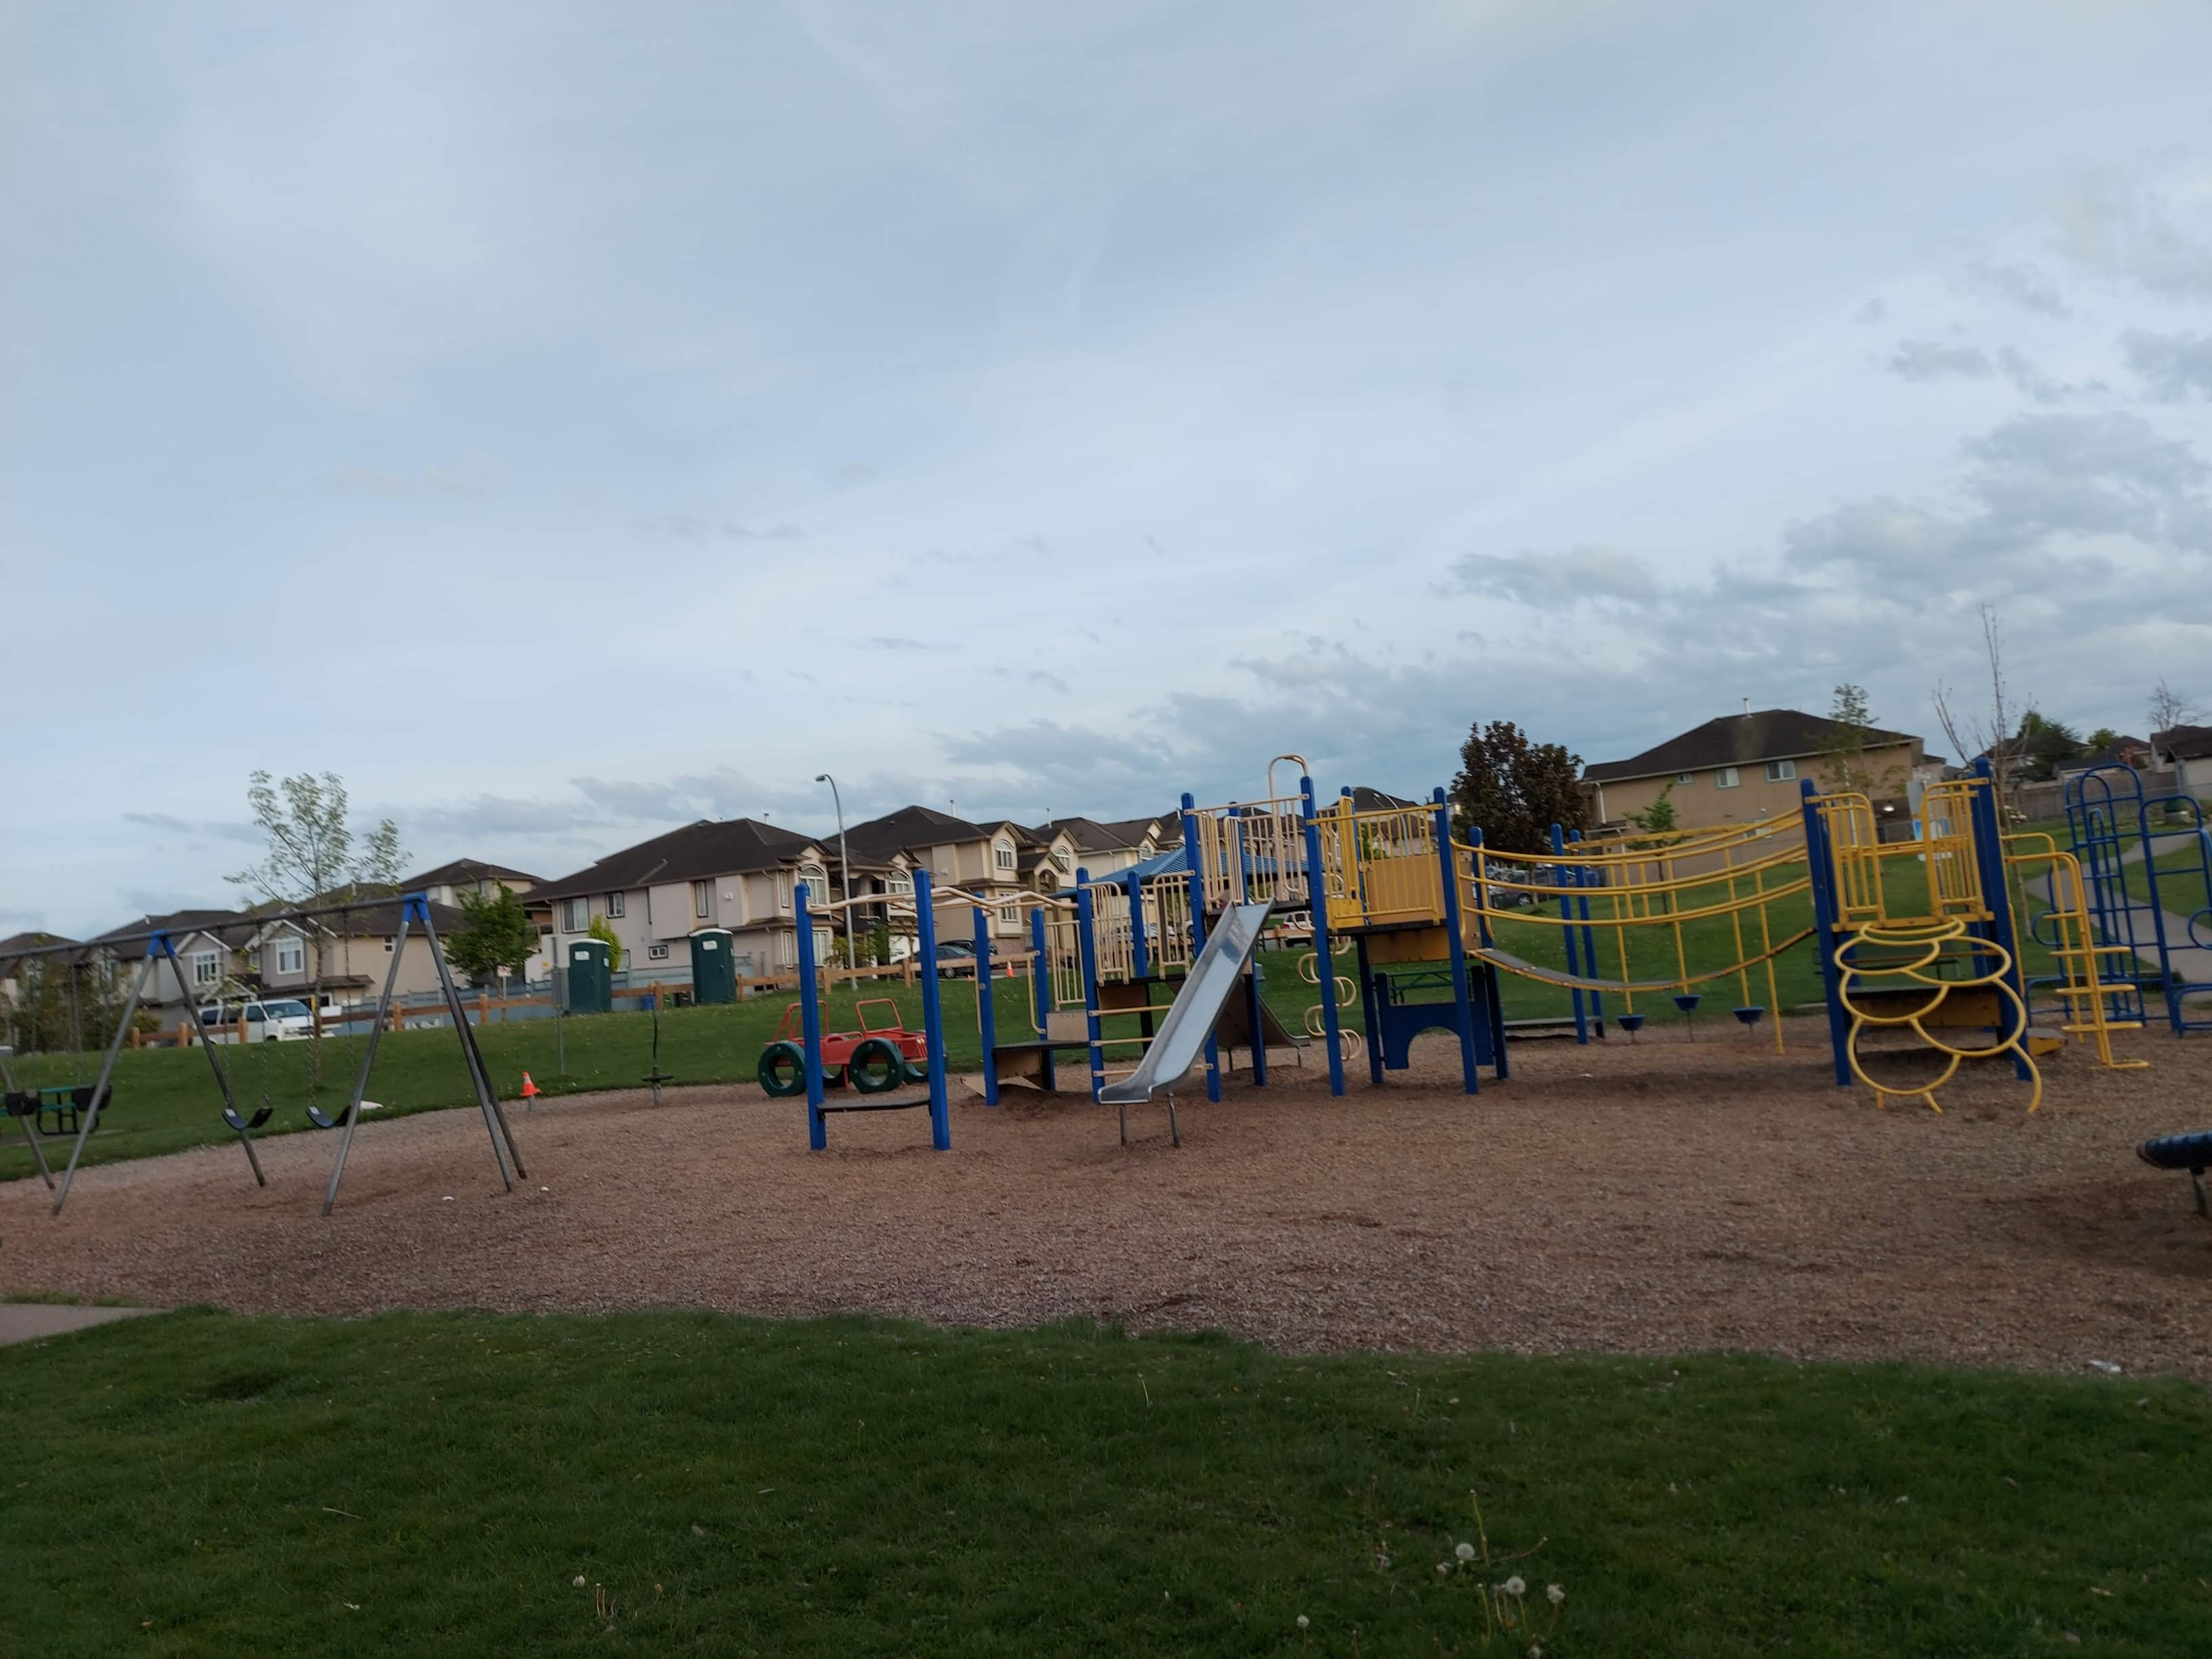 Playground by the discovery trail